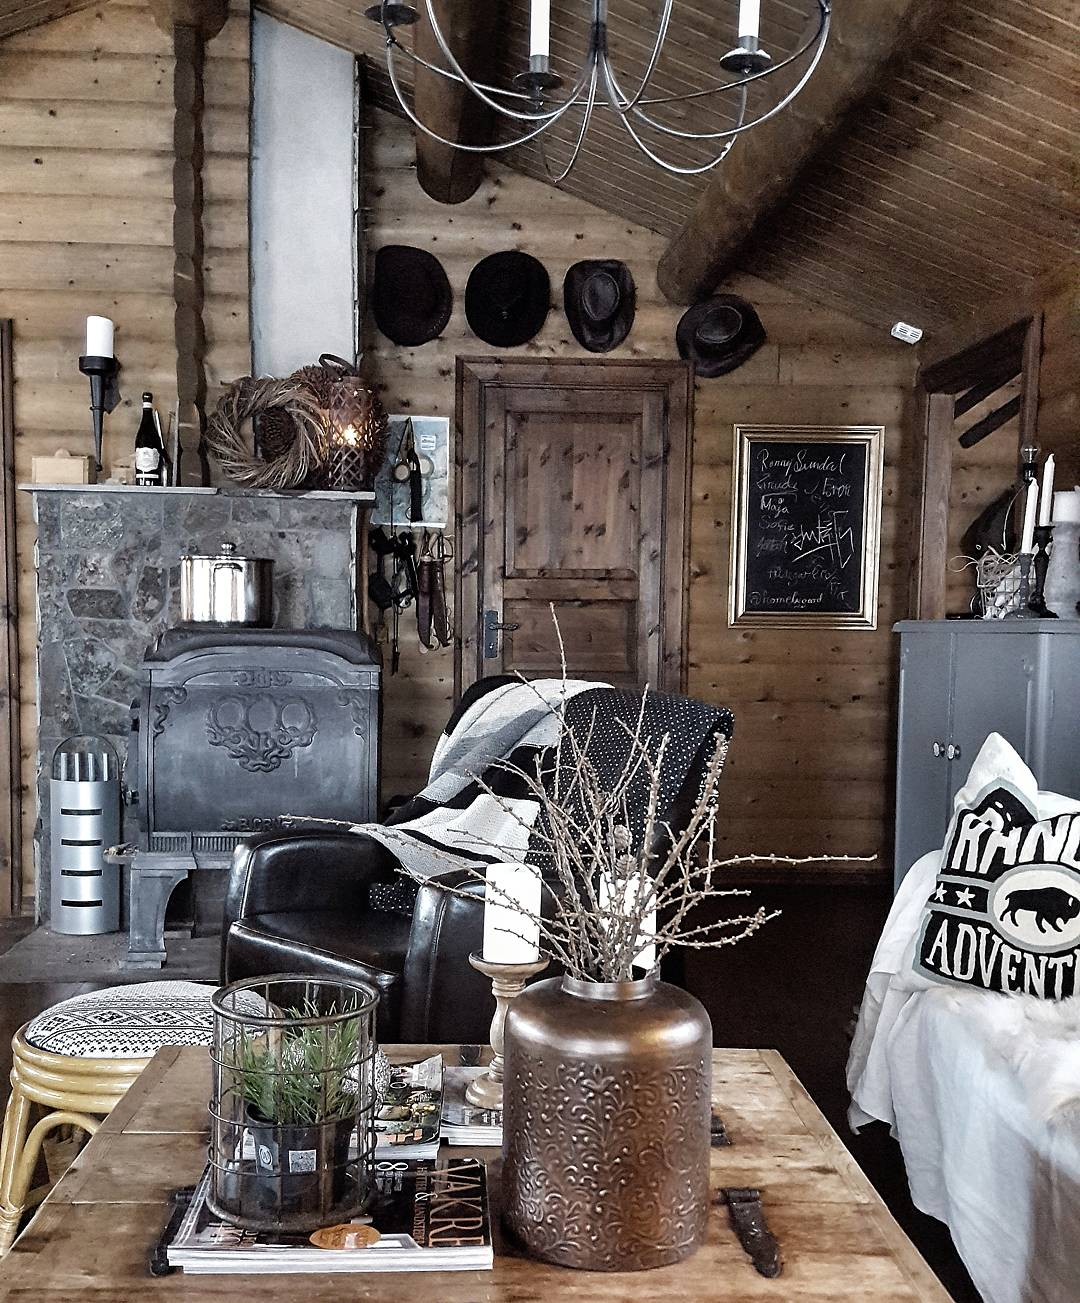 Gorgeous wooden walls and ceiling add texture and a cosy feel to the cabin